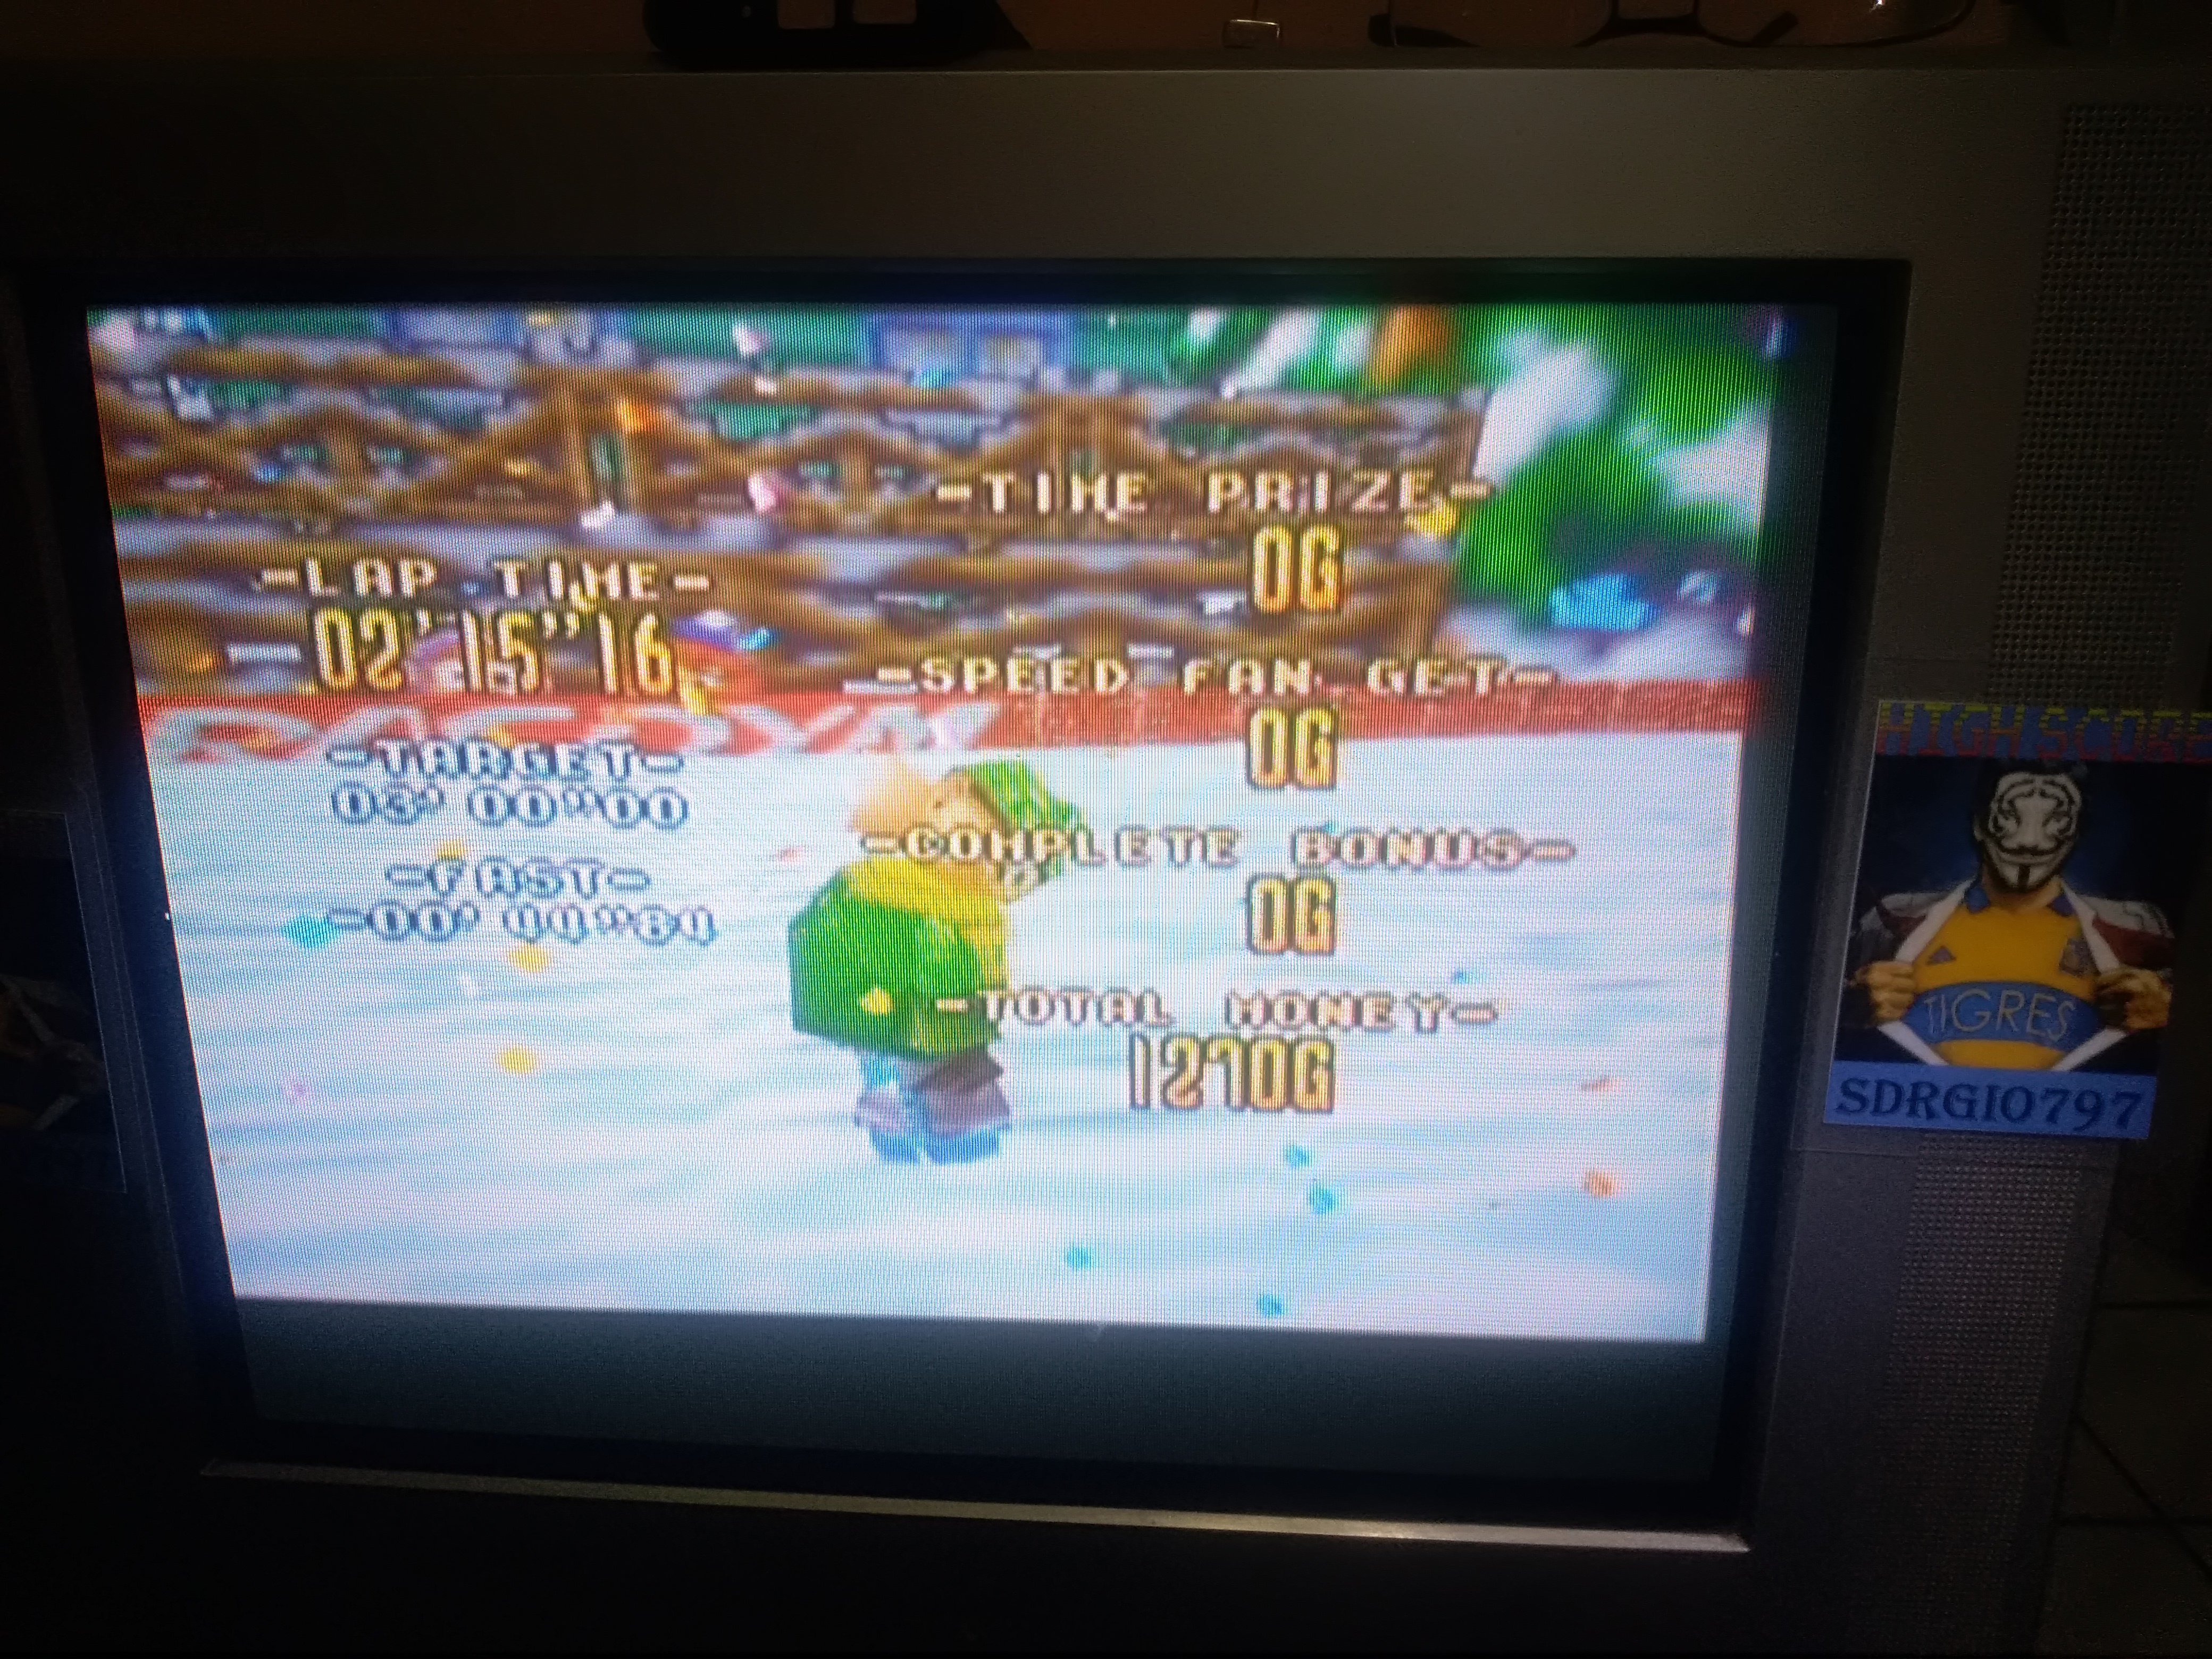 Sdrgio797: Snowboard Kids: Speed Game [Big Snowman/Fastest Lap] (N64 Emulated) 0:02:15.16 points on 2020-08-09 15:34:18